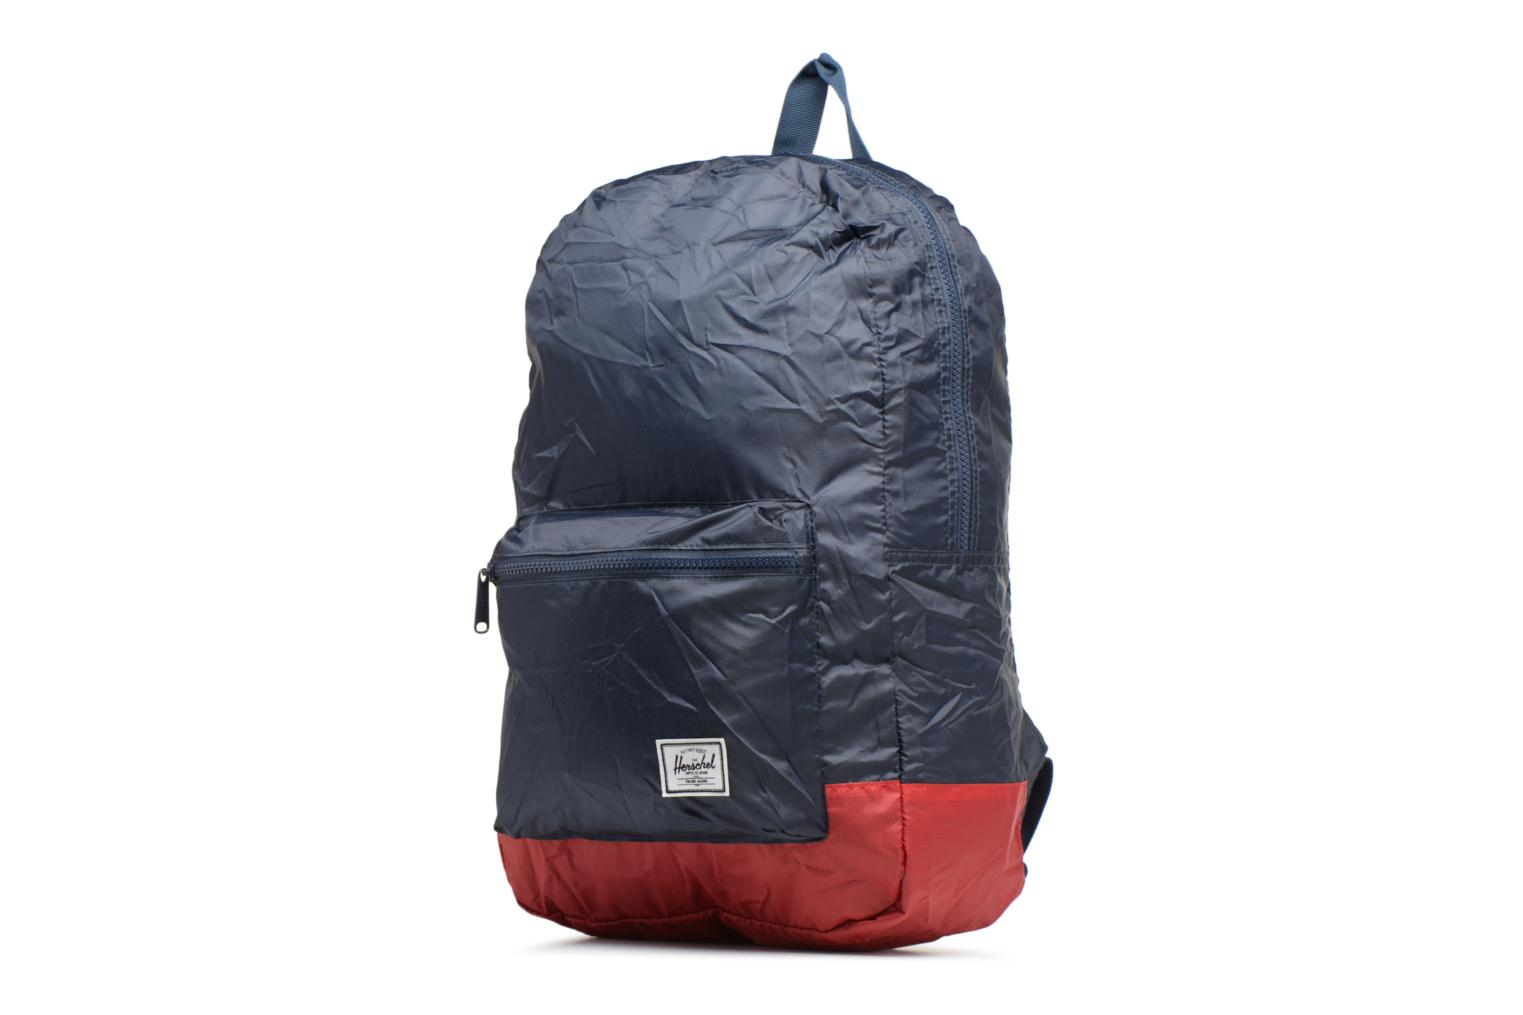 red Herschel Navy Packable Herschel Packable Daypack red Daypack Herschel Navy Packable Daypack UwOqrw